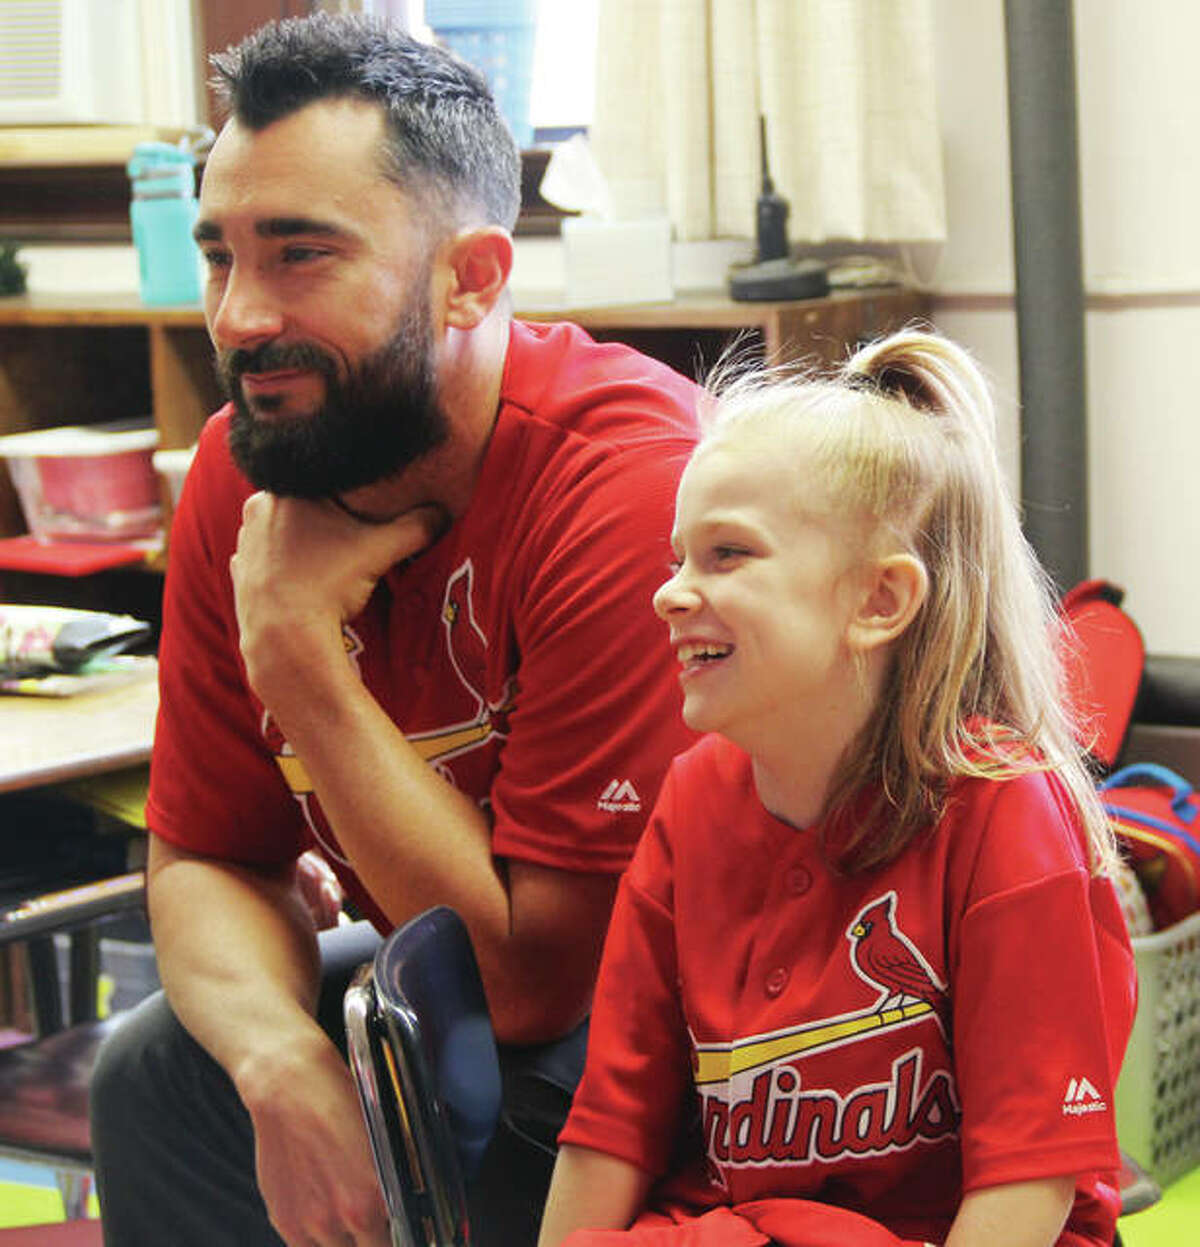 Matt Carpenter and Jocelyn Thomas chat Friday morning in her second-grade classroom. Thomas, who won a contest sponsored by Academy Sports to bring Carpenter to school, could barely contain her excitement at meeting her favorite baseball player.